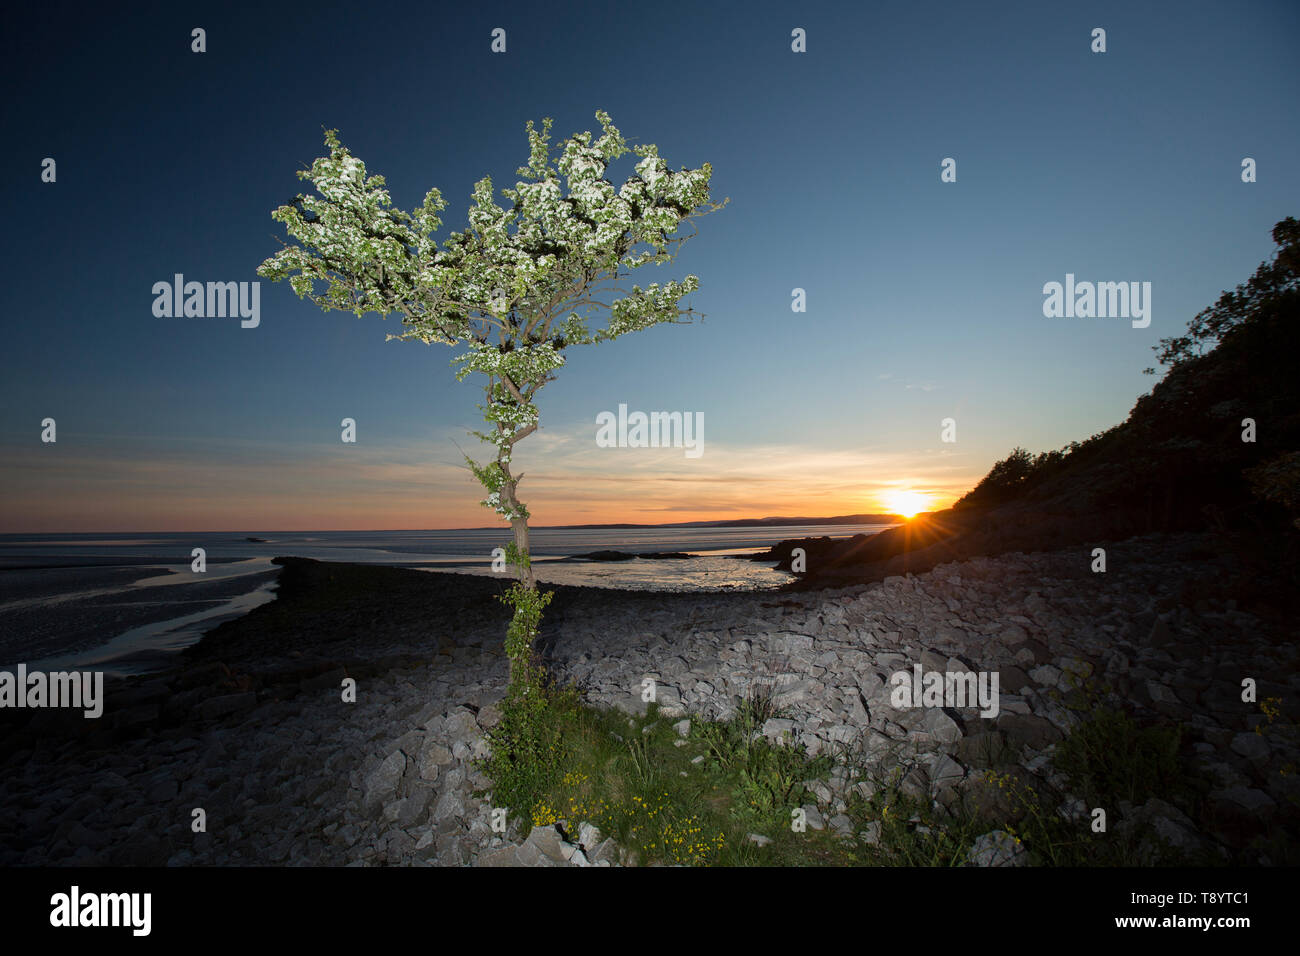 A single, flowering hawthorn tree, Crataegus monogyna, at sunset lit by flash growing at Jenny Brown's Point near the village of Silverdale on the edg - Stock Image